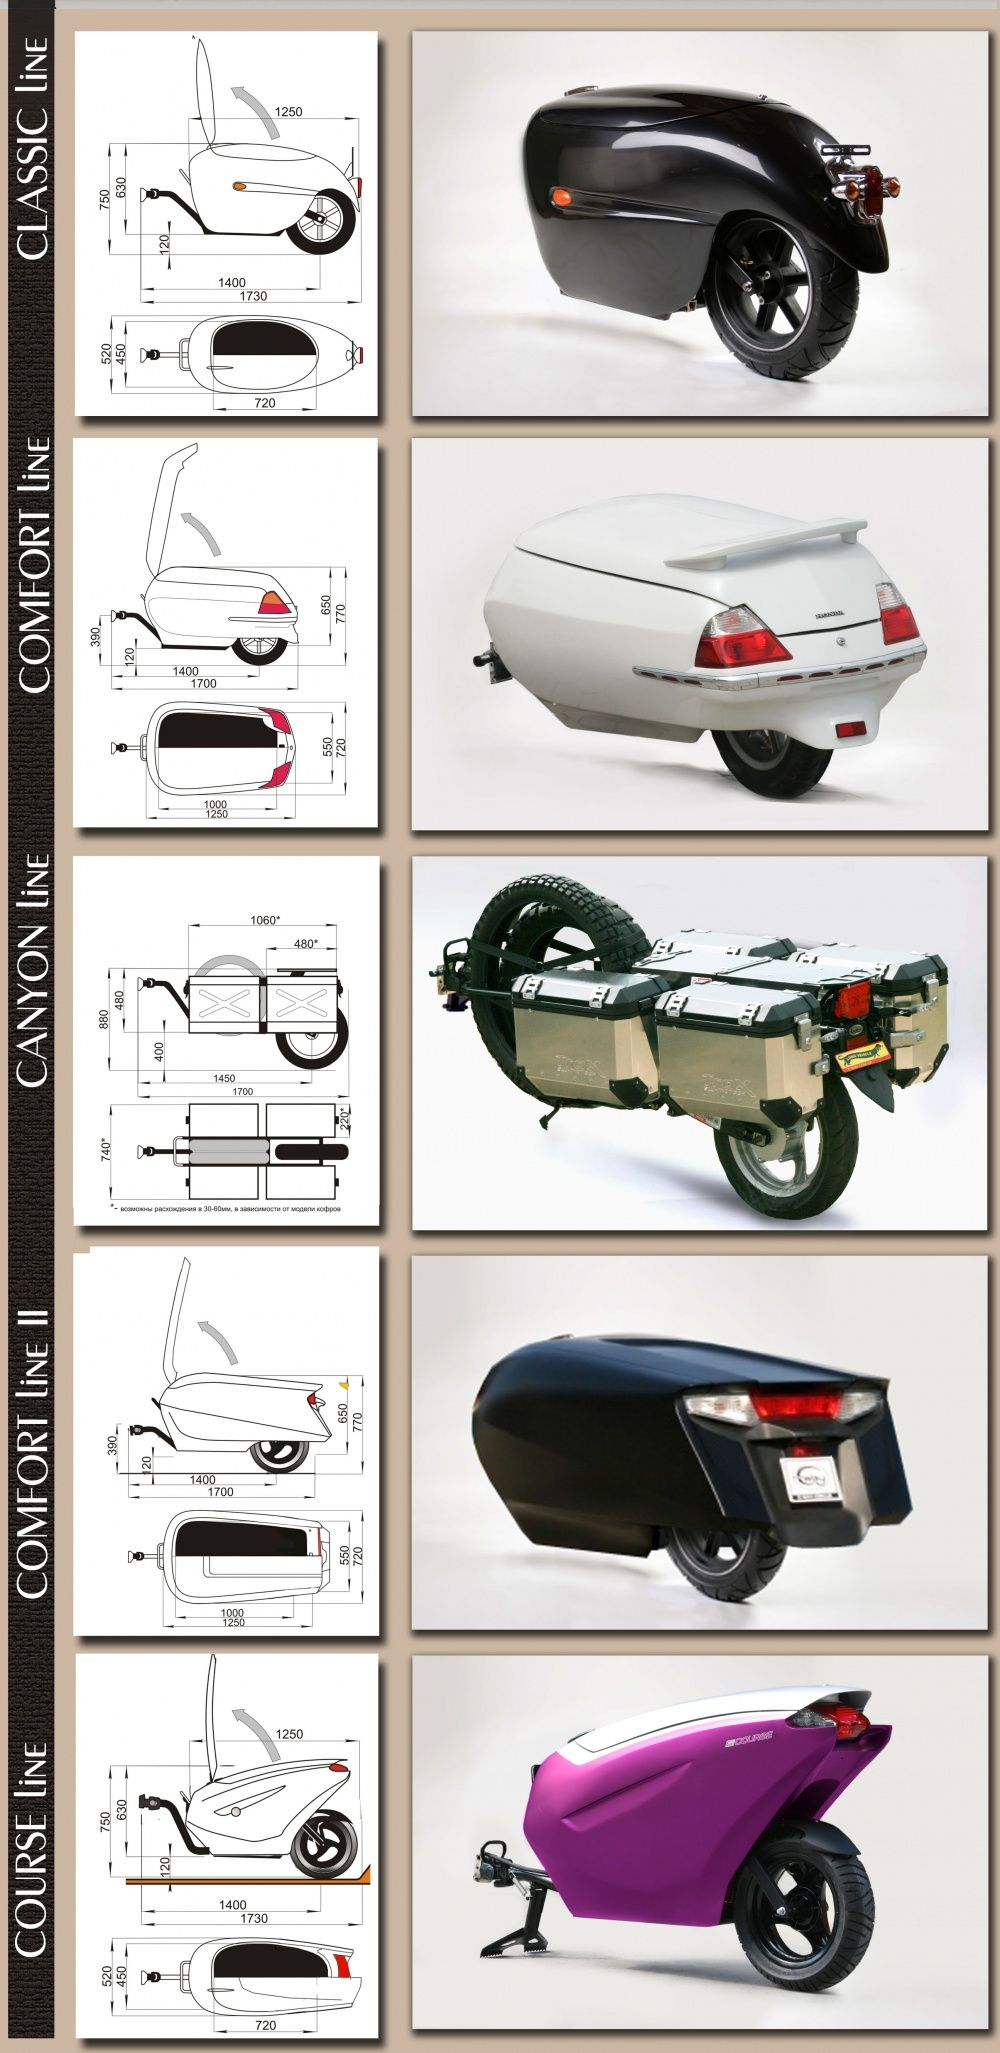 Unicycle motorcycle trailers from c-way.io.ua | motor | Pinterest ...